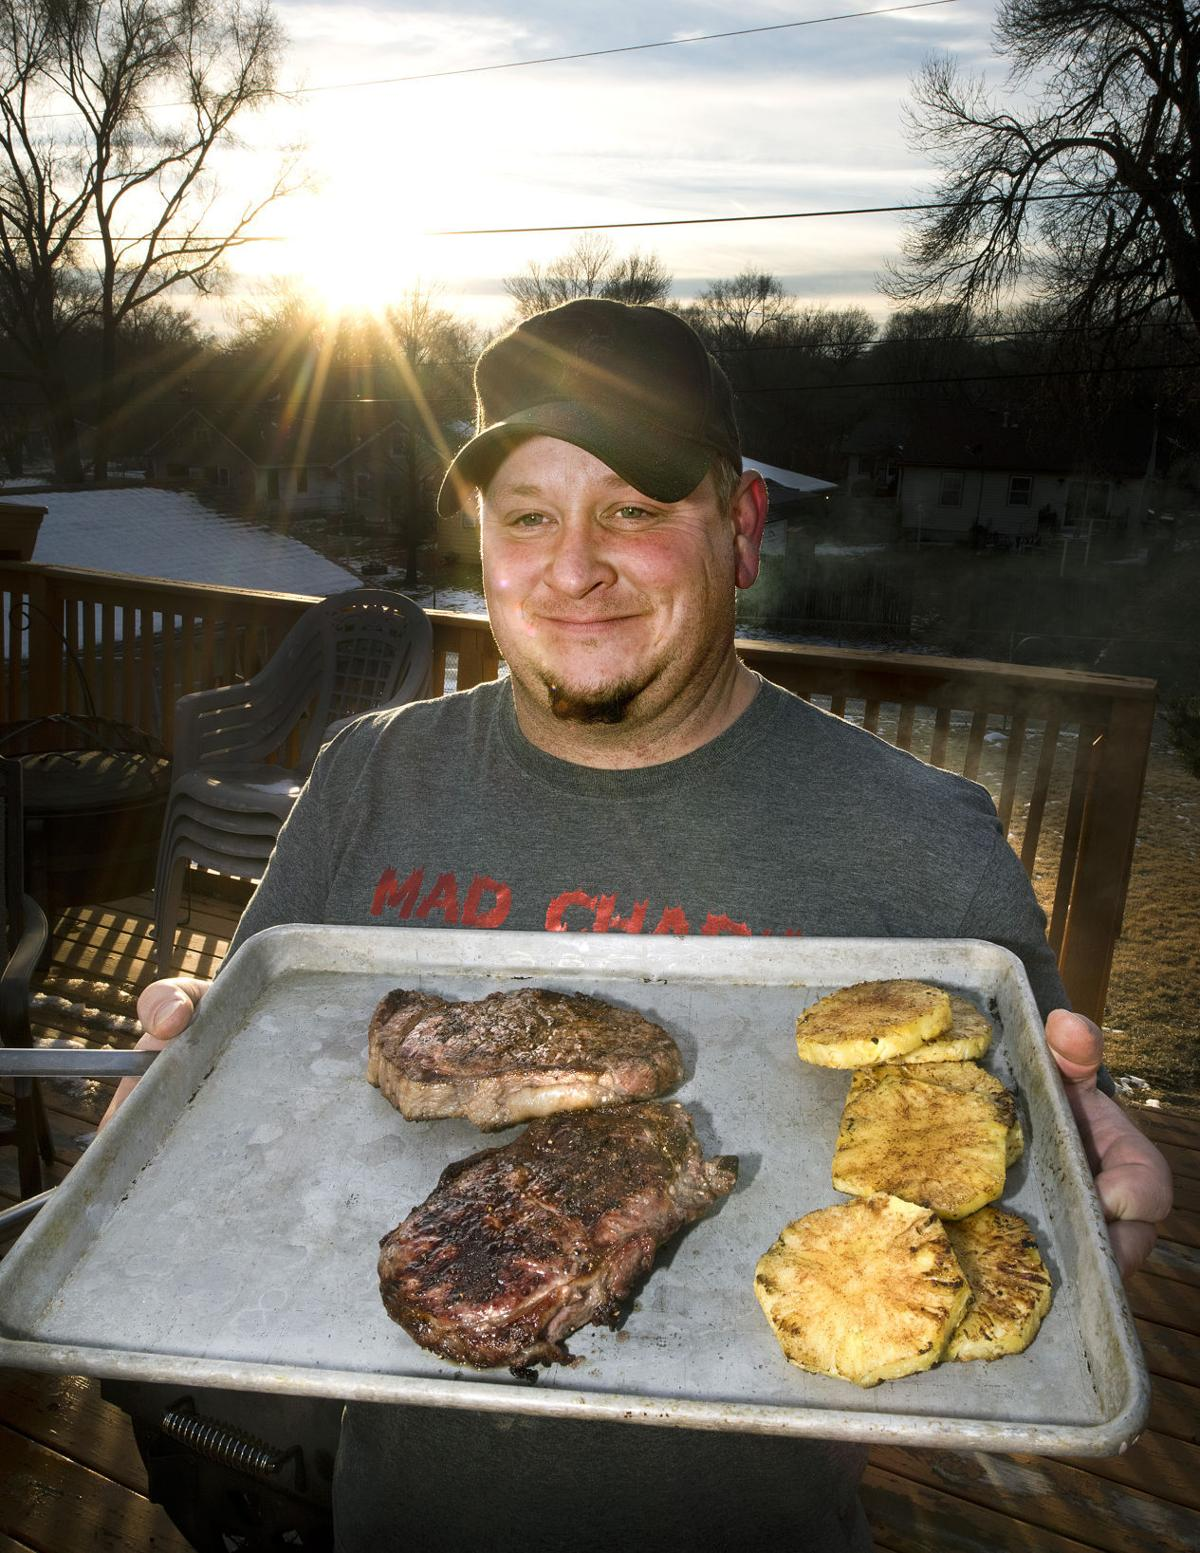 Food grilling Chad Peterson